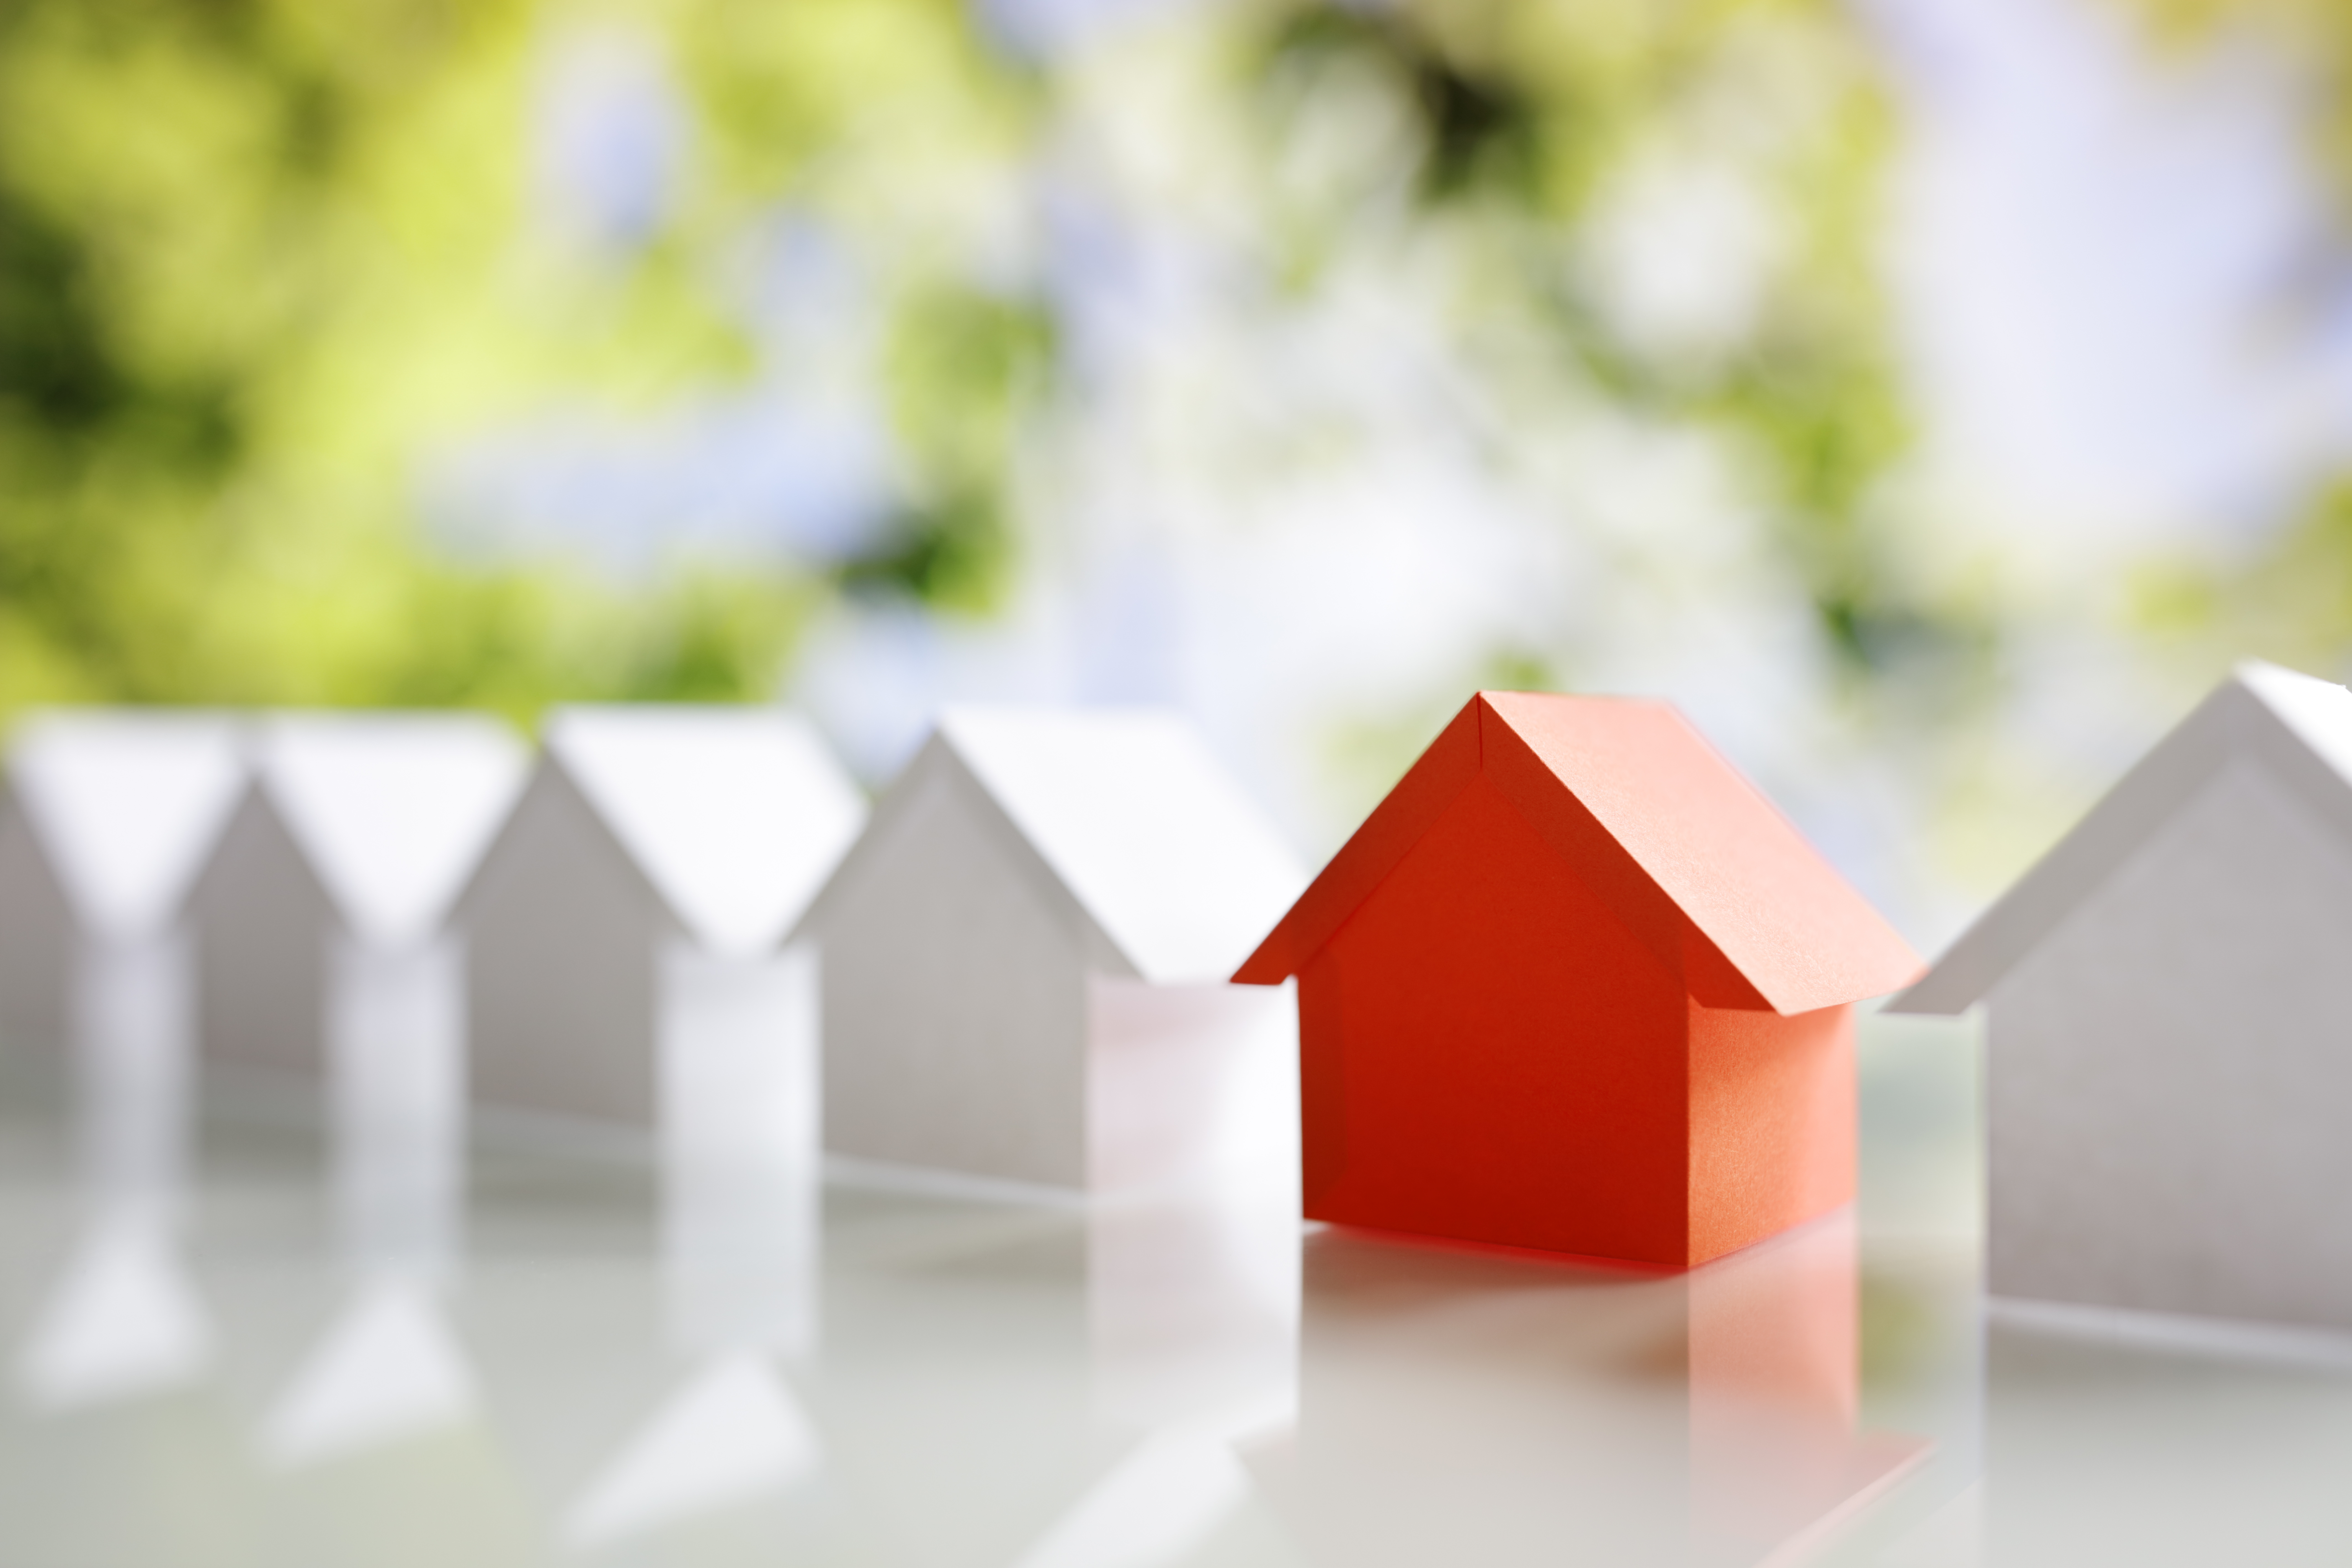 Are you a landlord looking to lease your property? We offer guaranteed rent